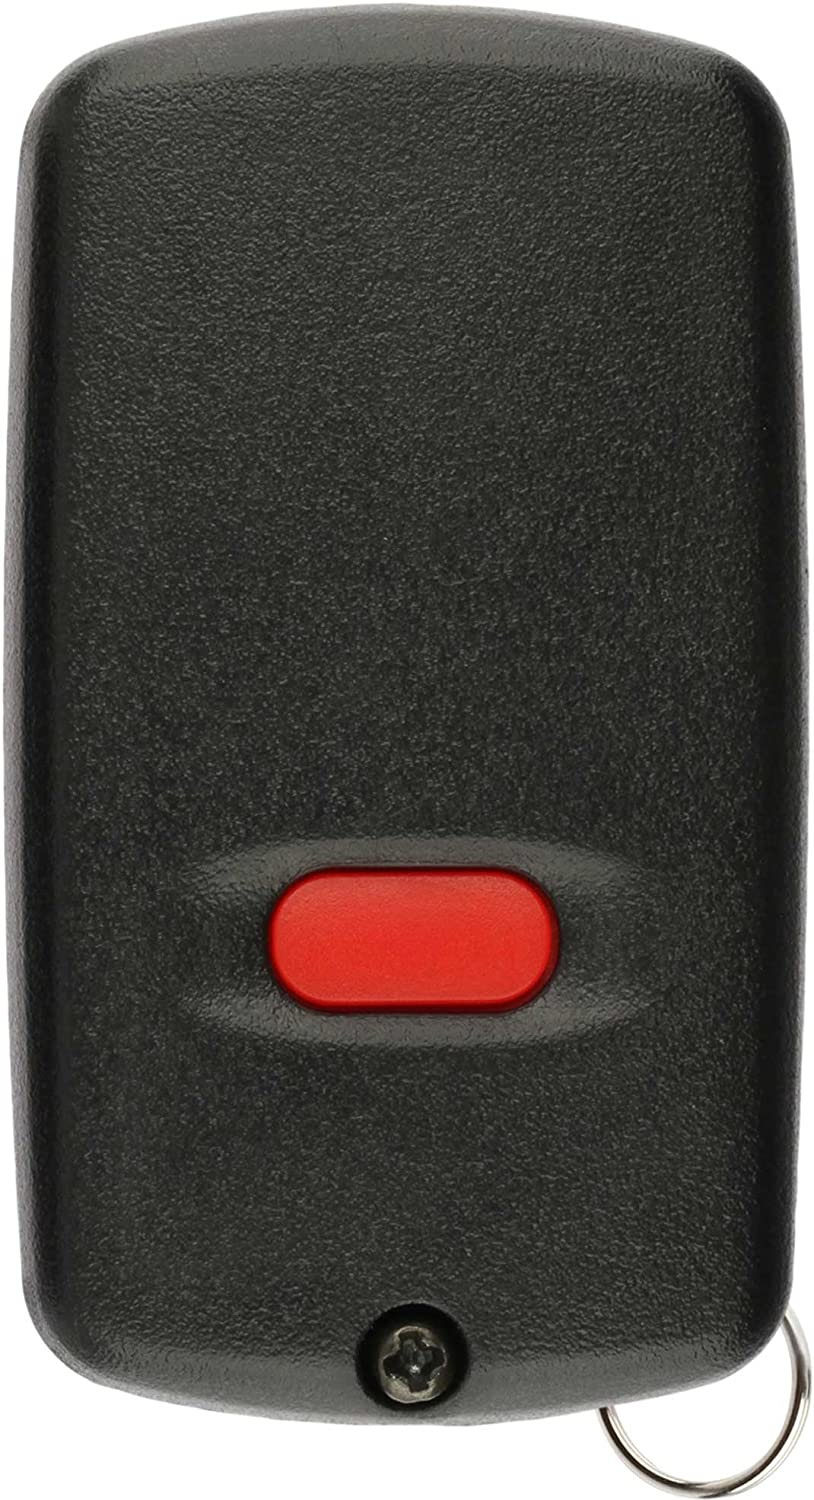 MR587983 04-05 Mitsubishi Endeavor Keyless Entry Remote Key Fob OUCG8D-525M-A G8D-525M-A For 02-06 Mitsubishi Eclipse